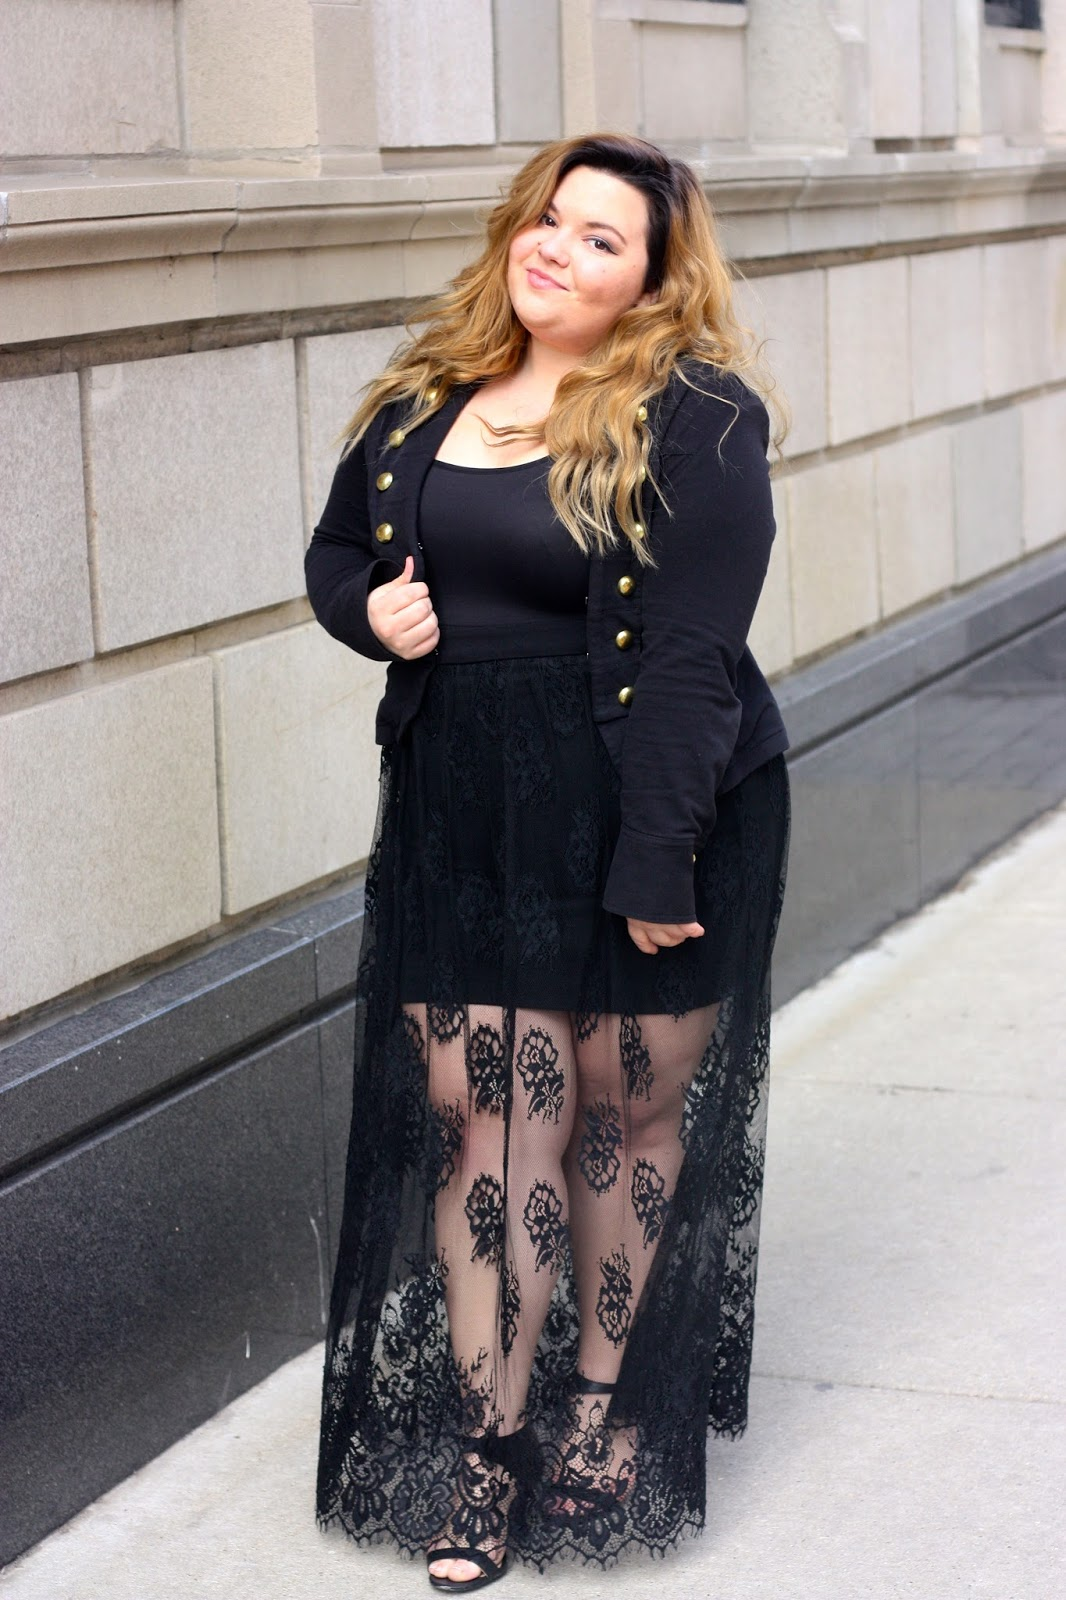 natalie in the city, natalie criag, plus size fashion, plus size fashion blogger, plus size see through maxi skirts, military jackets, gold button jackets, ootd, chicago, forever 21 plus, fashion